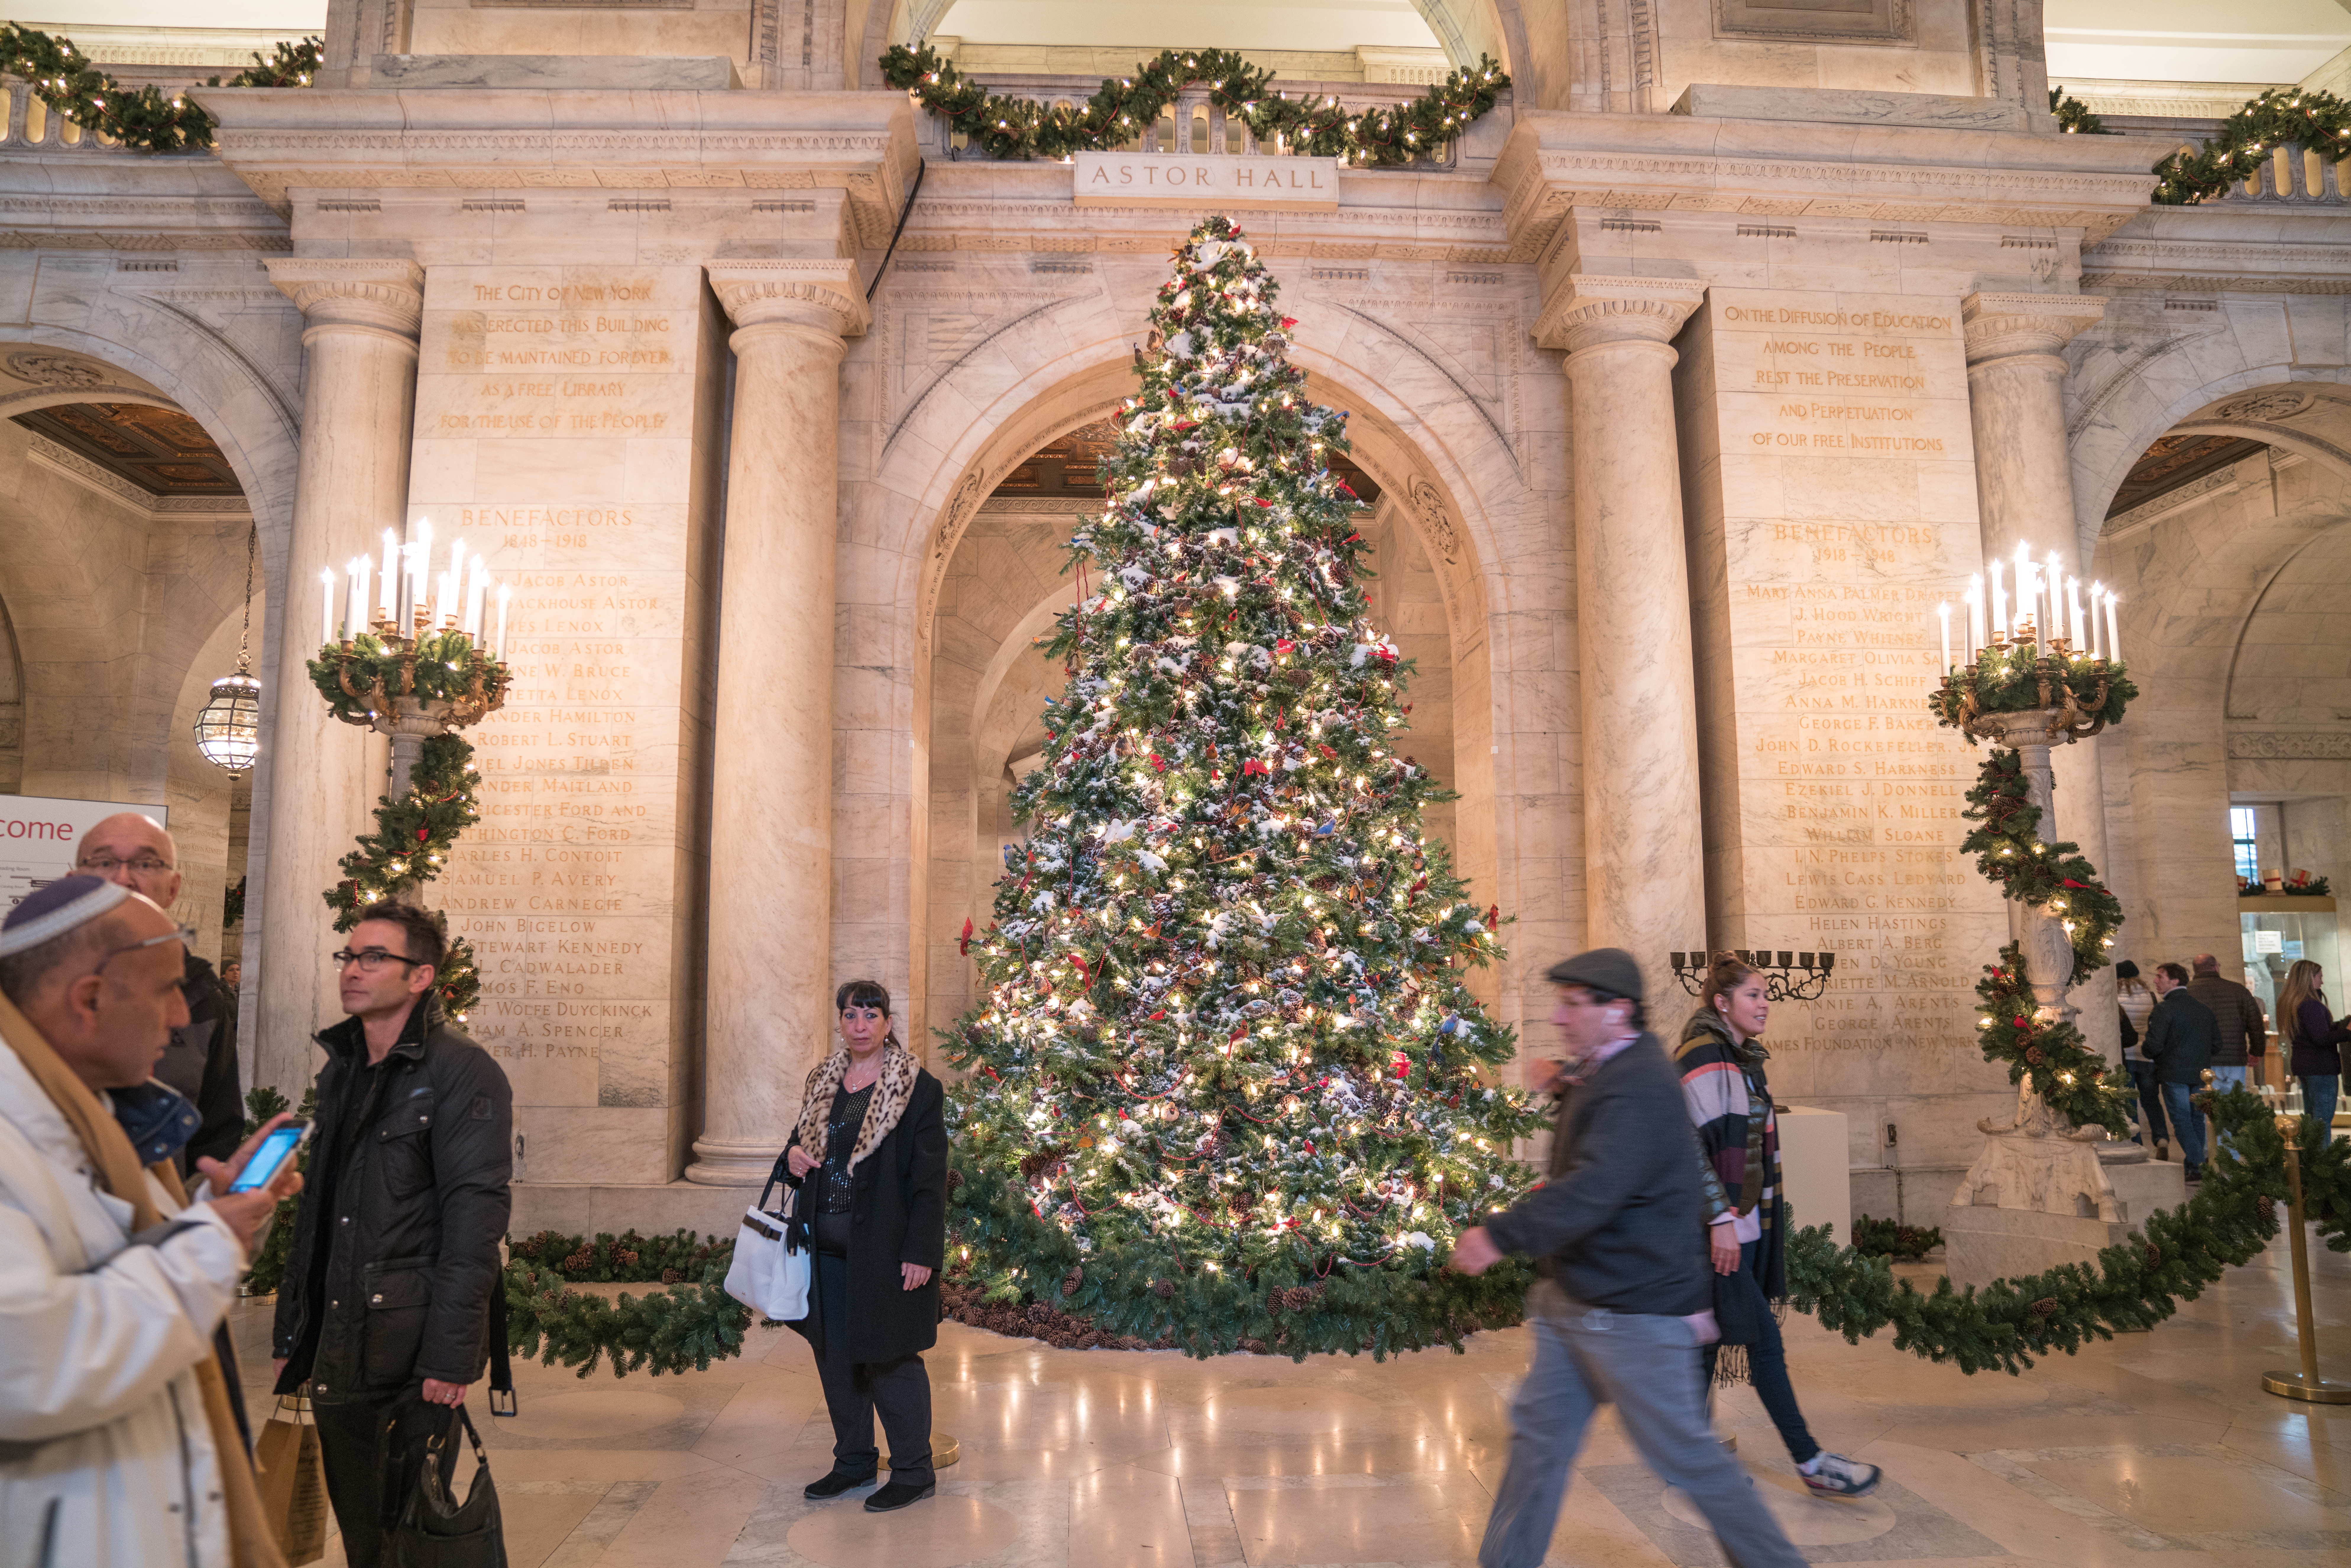 The New York Public Library Christmas tree. There is a wall behind the tree which is tan brick with an archway. There are people walking in front of the tree.